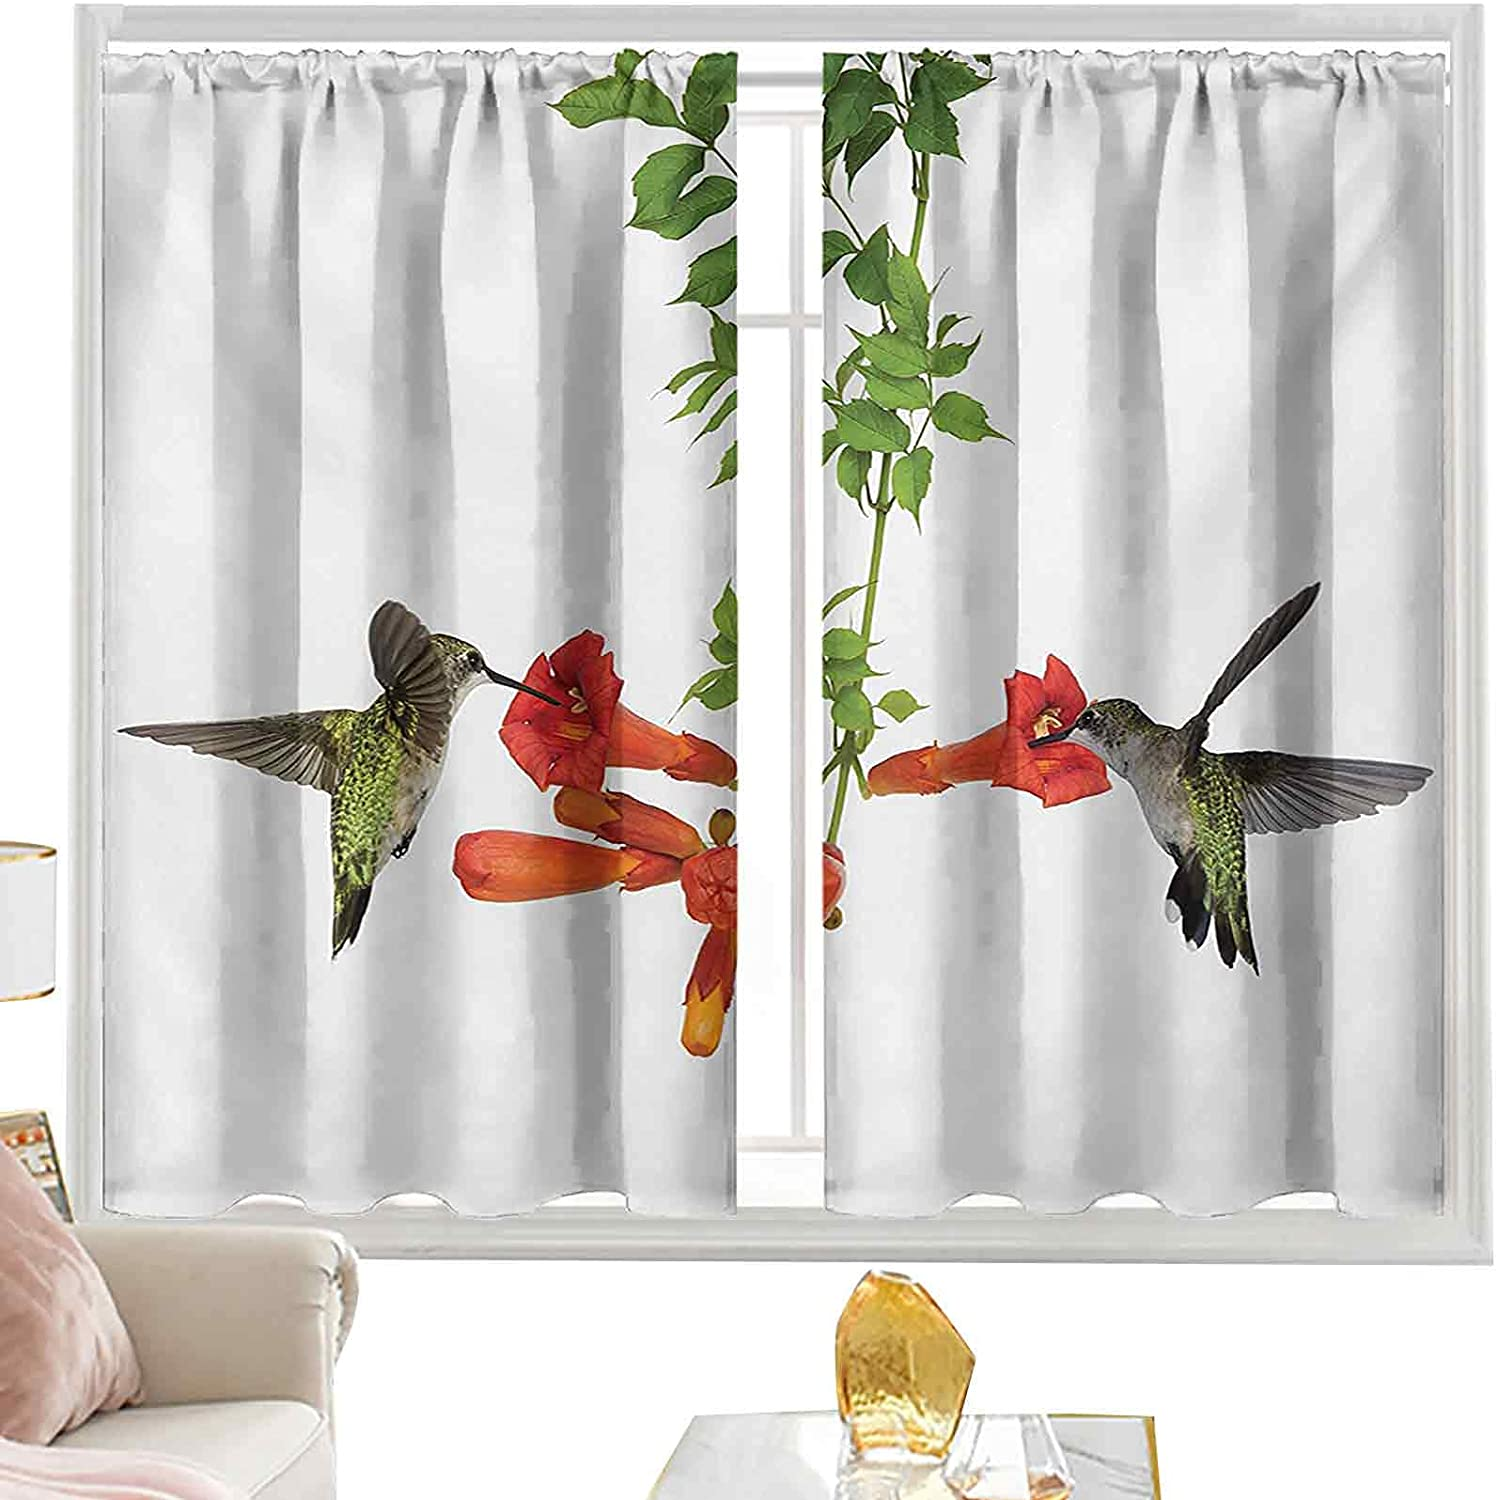 Blackout Curtain OFFicial mail order Rod Pocket Two Max 77% OFF Nectar fro Hummingbirds Sipping